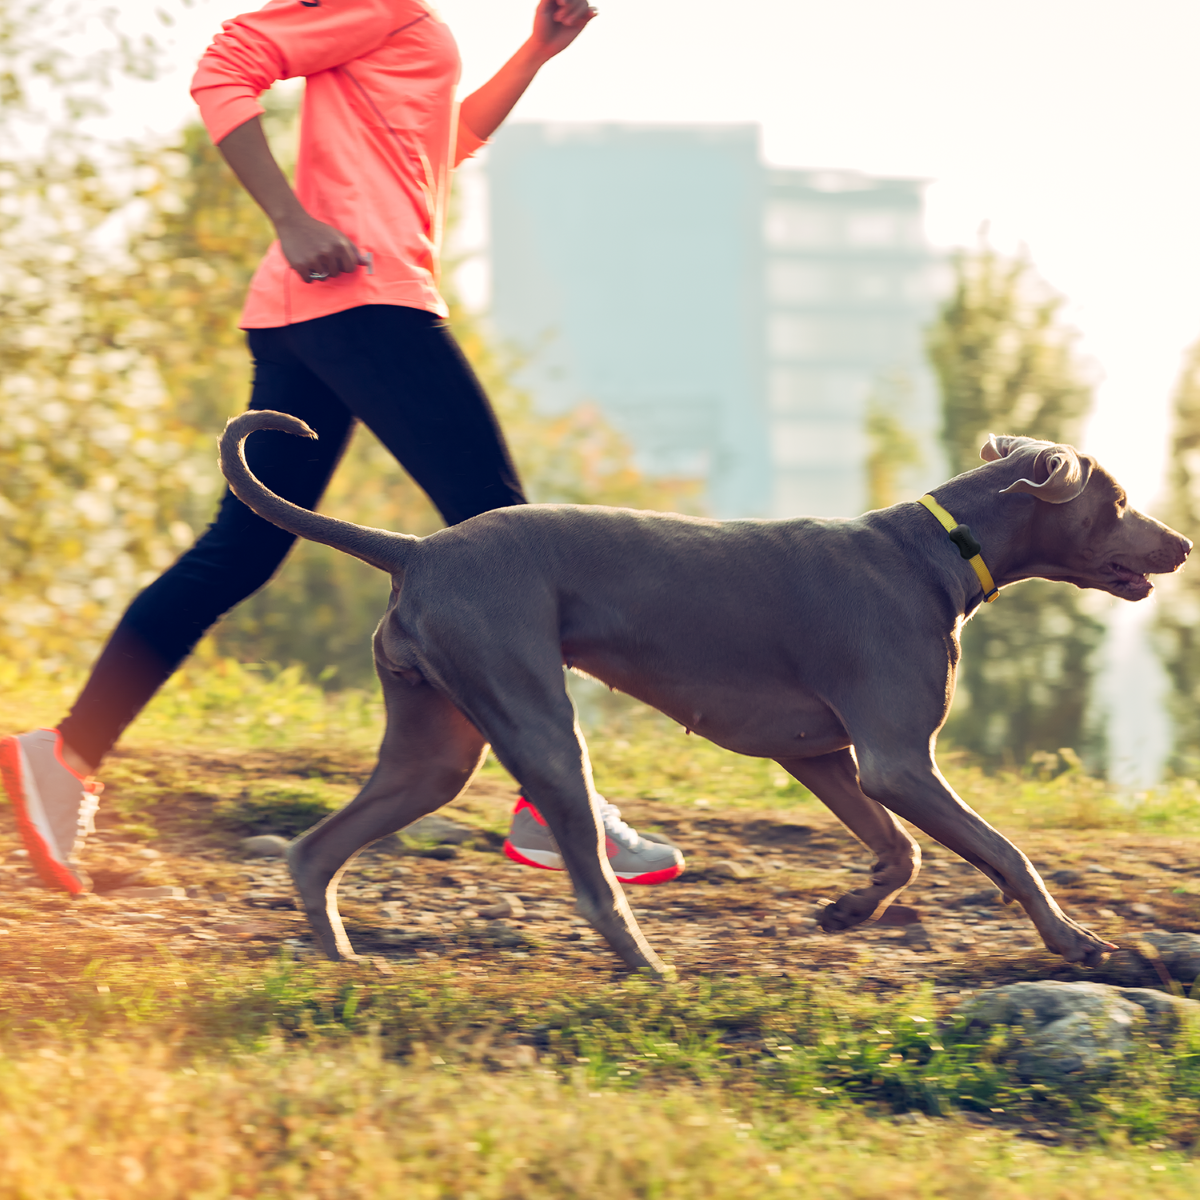 FitBark Dog GPS & Health App - Offers both dog owners and their dogs motivation to stay active and healthy.